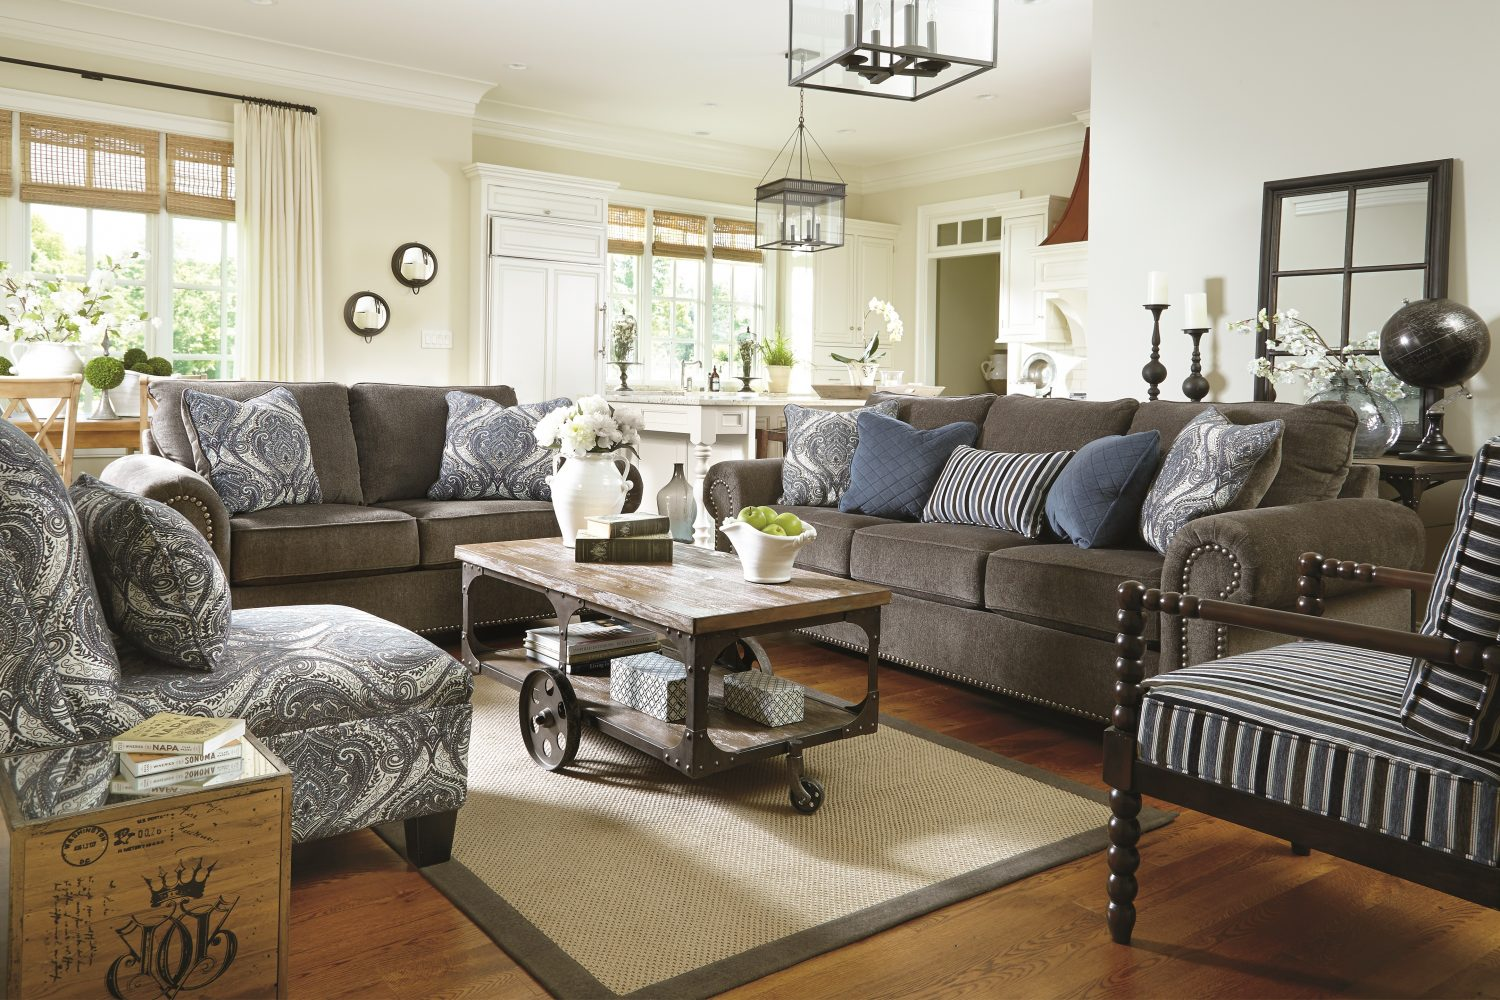 Living room furniture layout guide plan ideas ashley - Large living room furniture placement ...